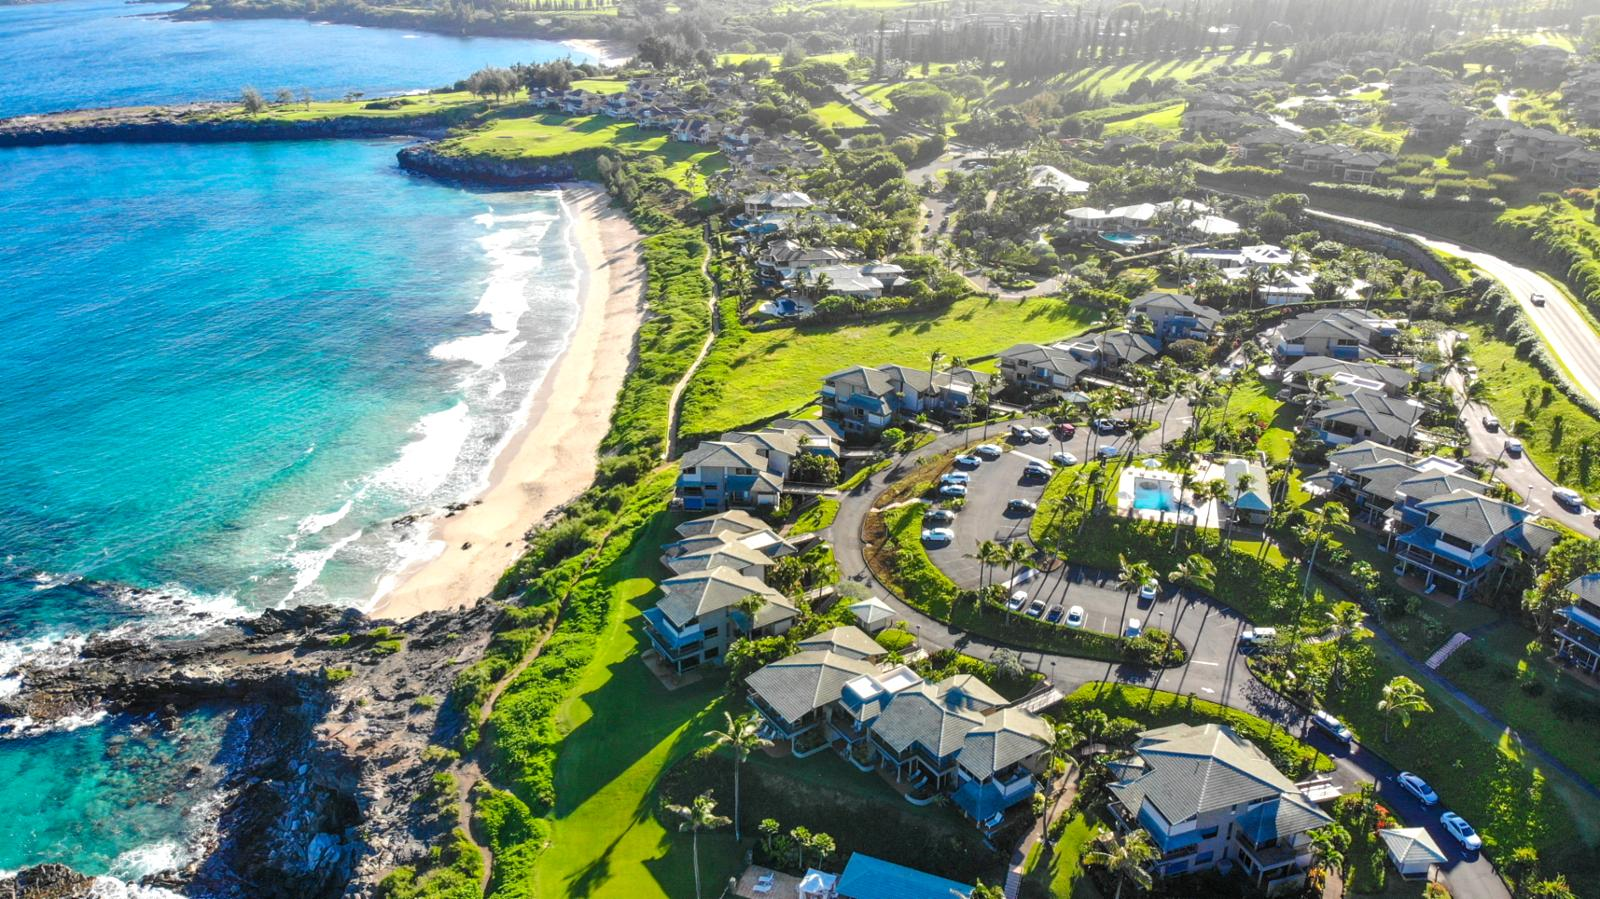 The Kapalua Coastal Trail, just steps away from your villa!